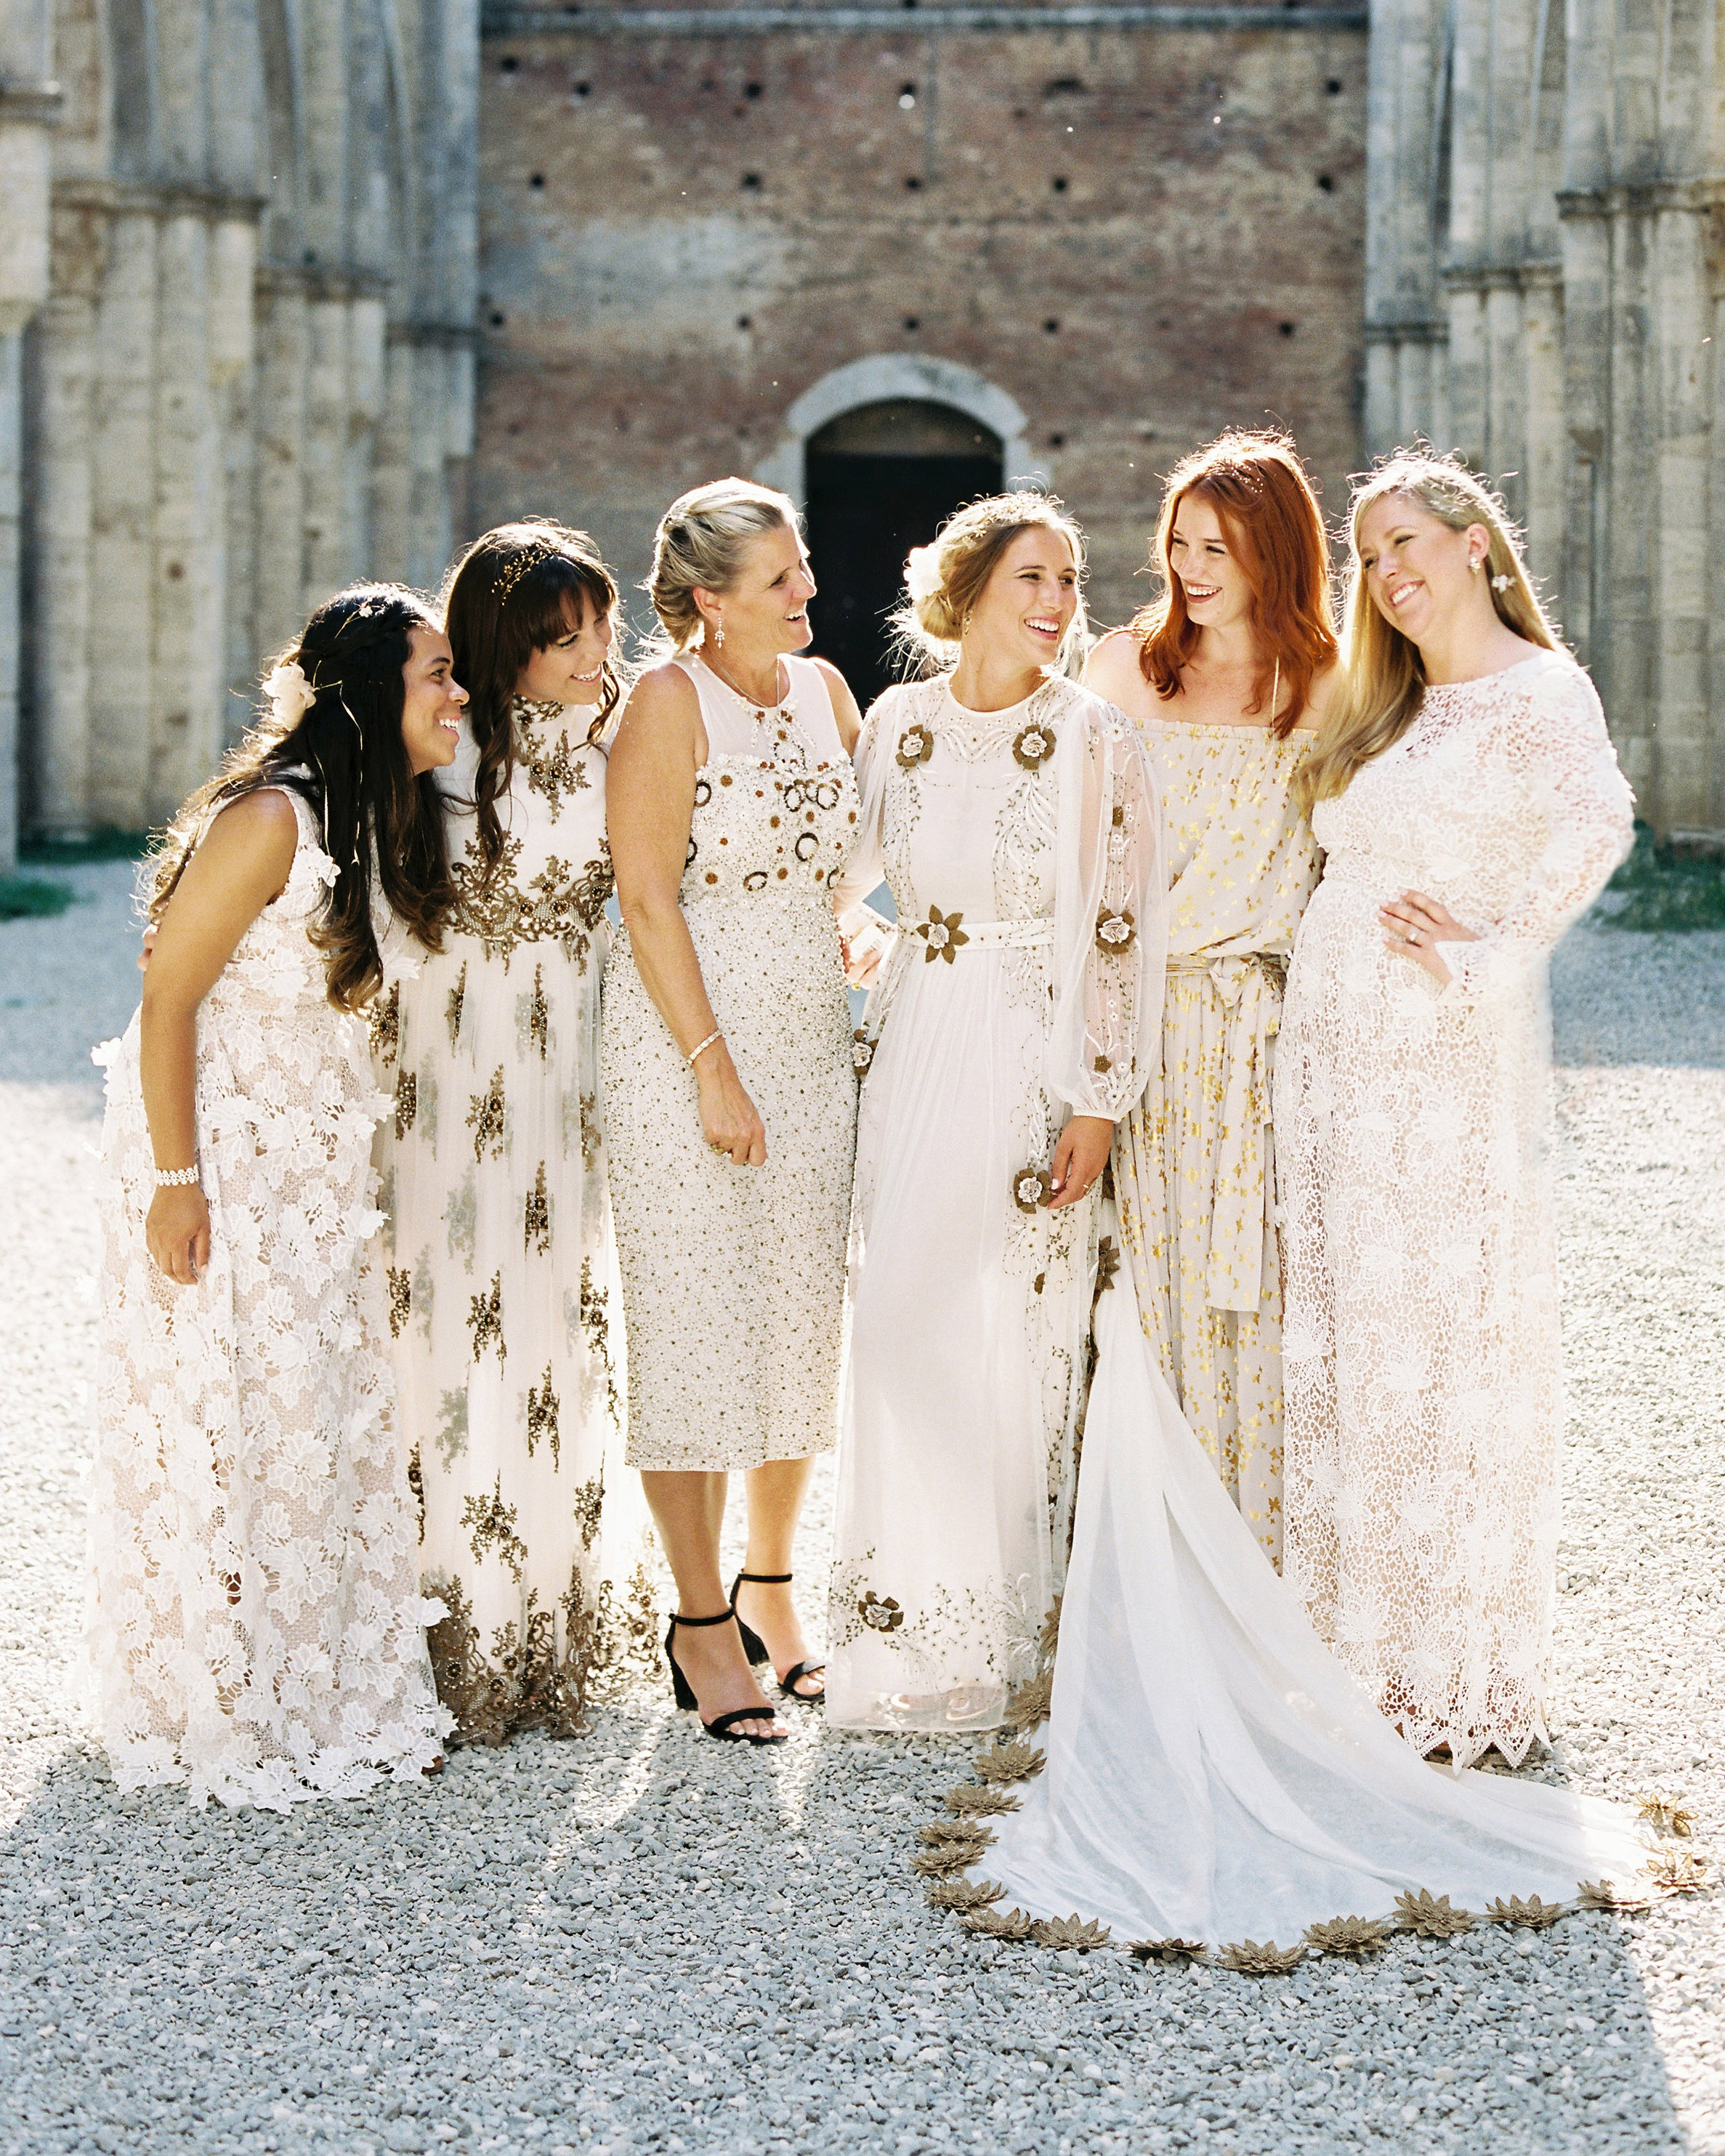 Should you be hands-on with the bridesmaids?